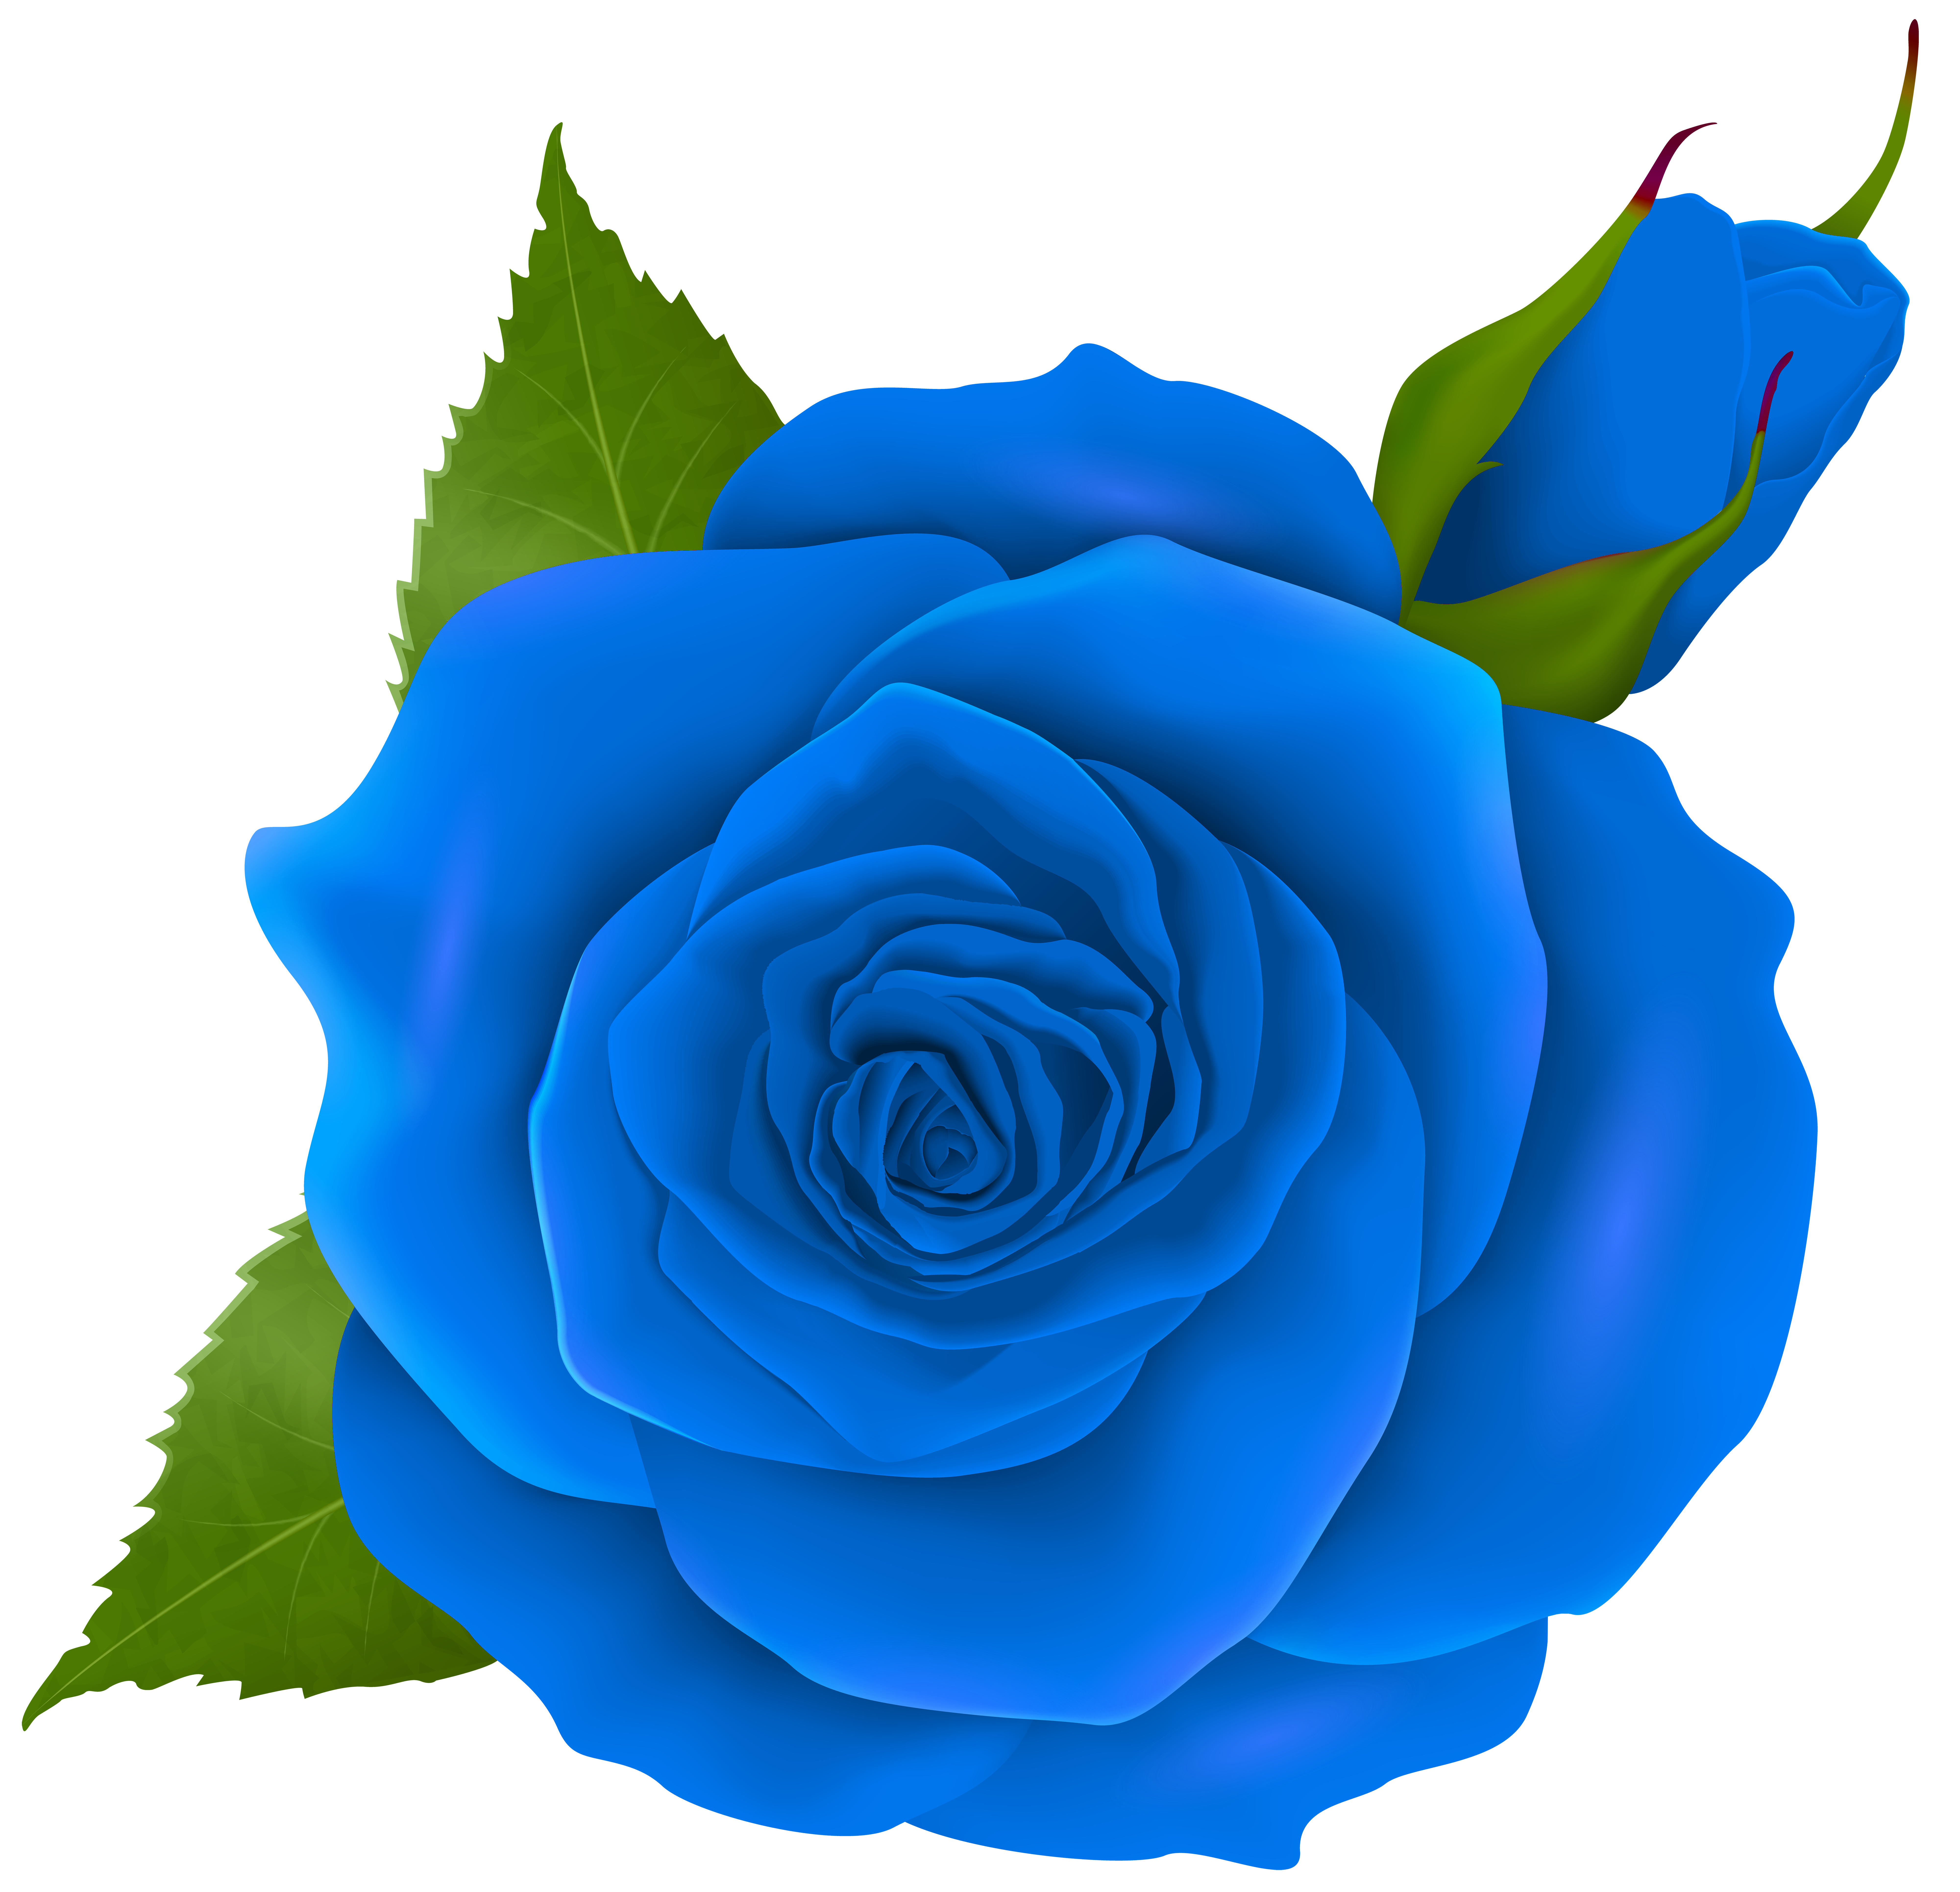 Blue rose and bud. Clipart roses doodle